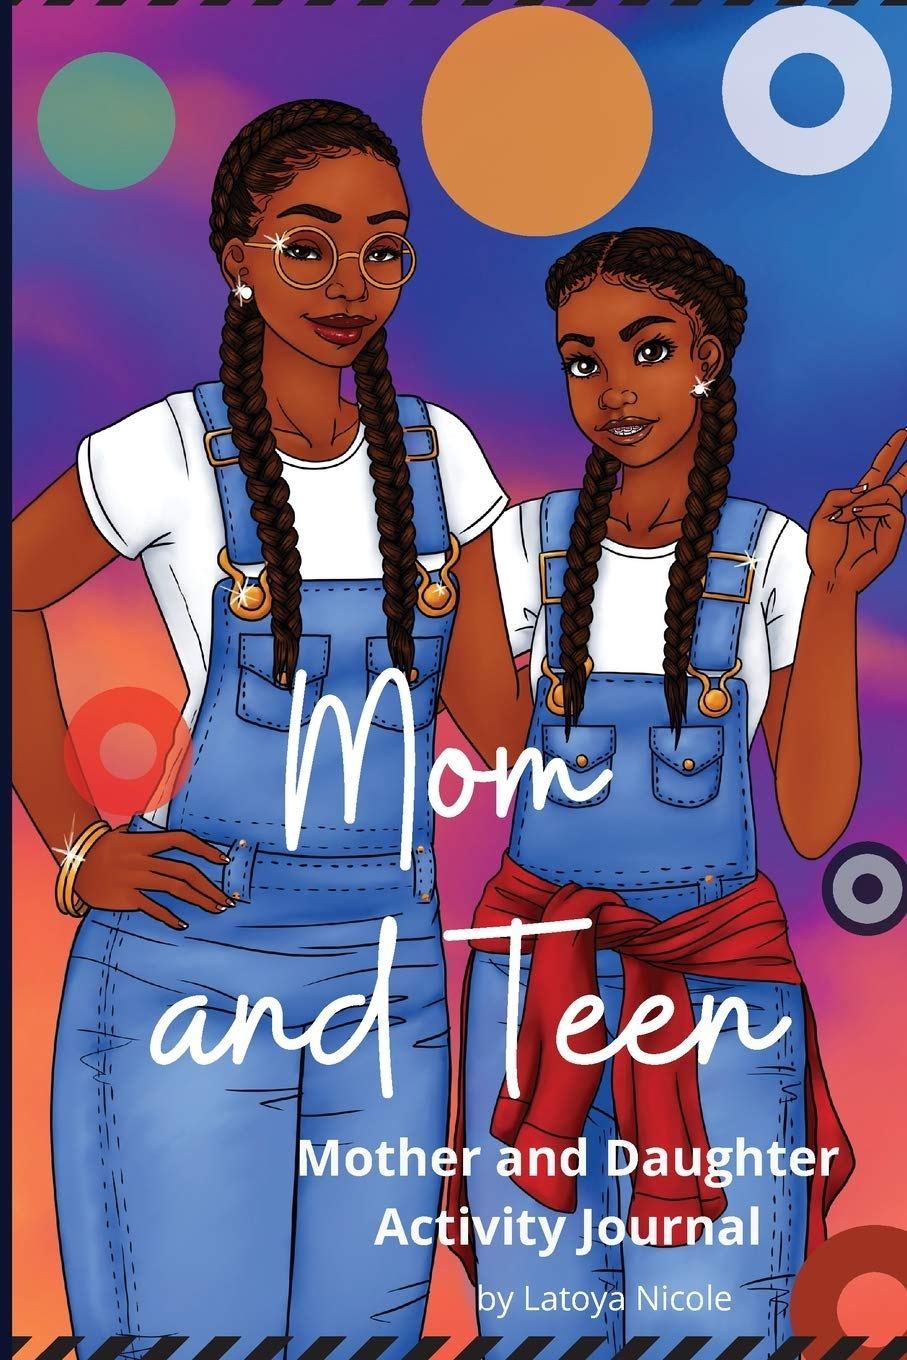 Mom and Teen: An Activity Journal and Diary for Mother and Daughter